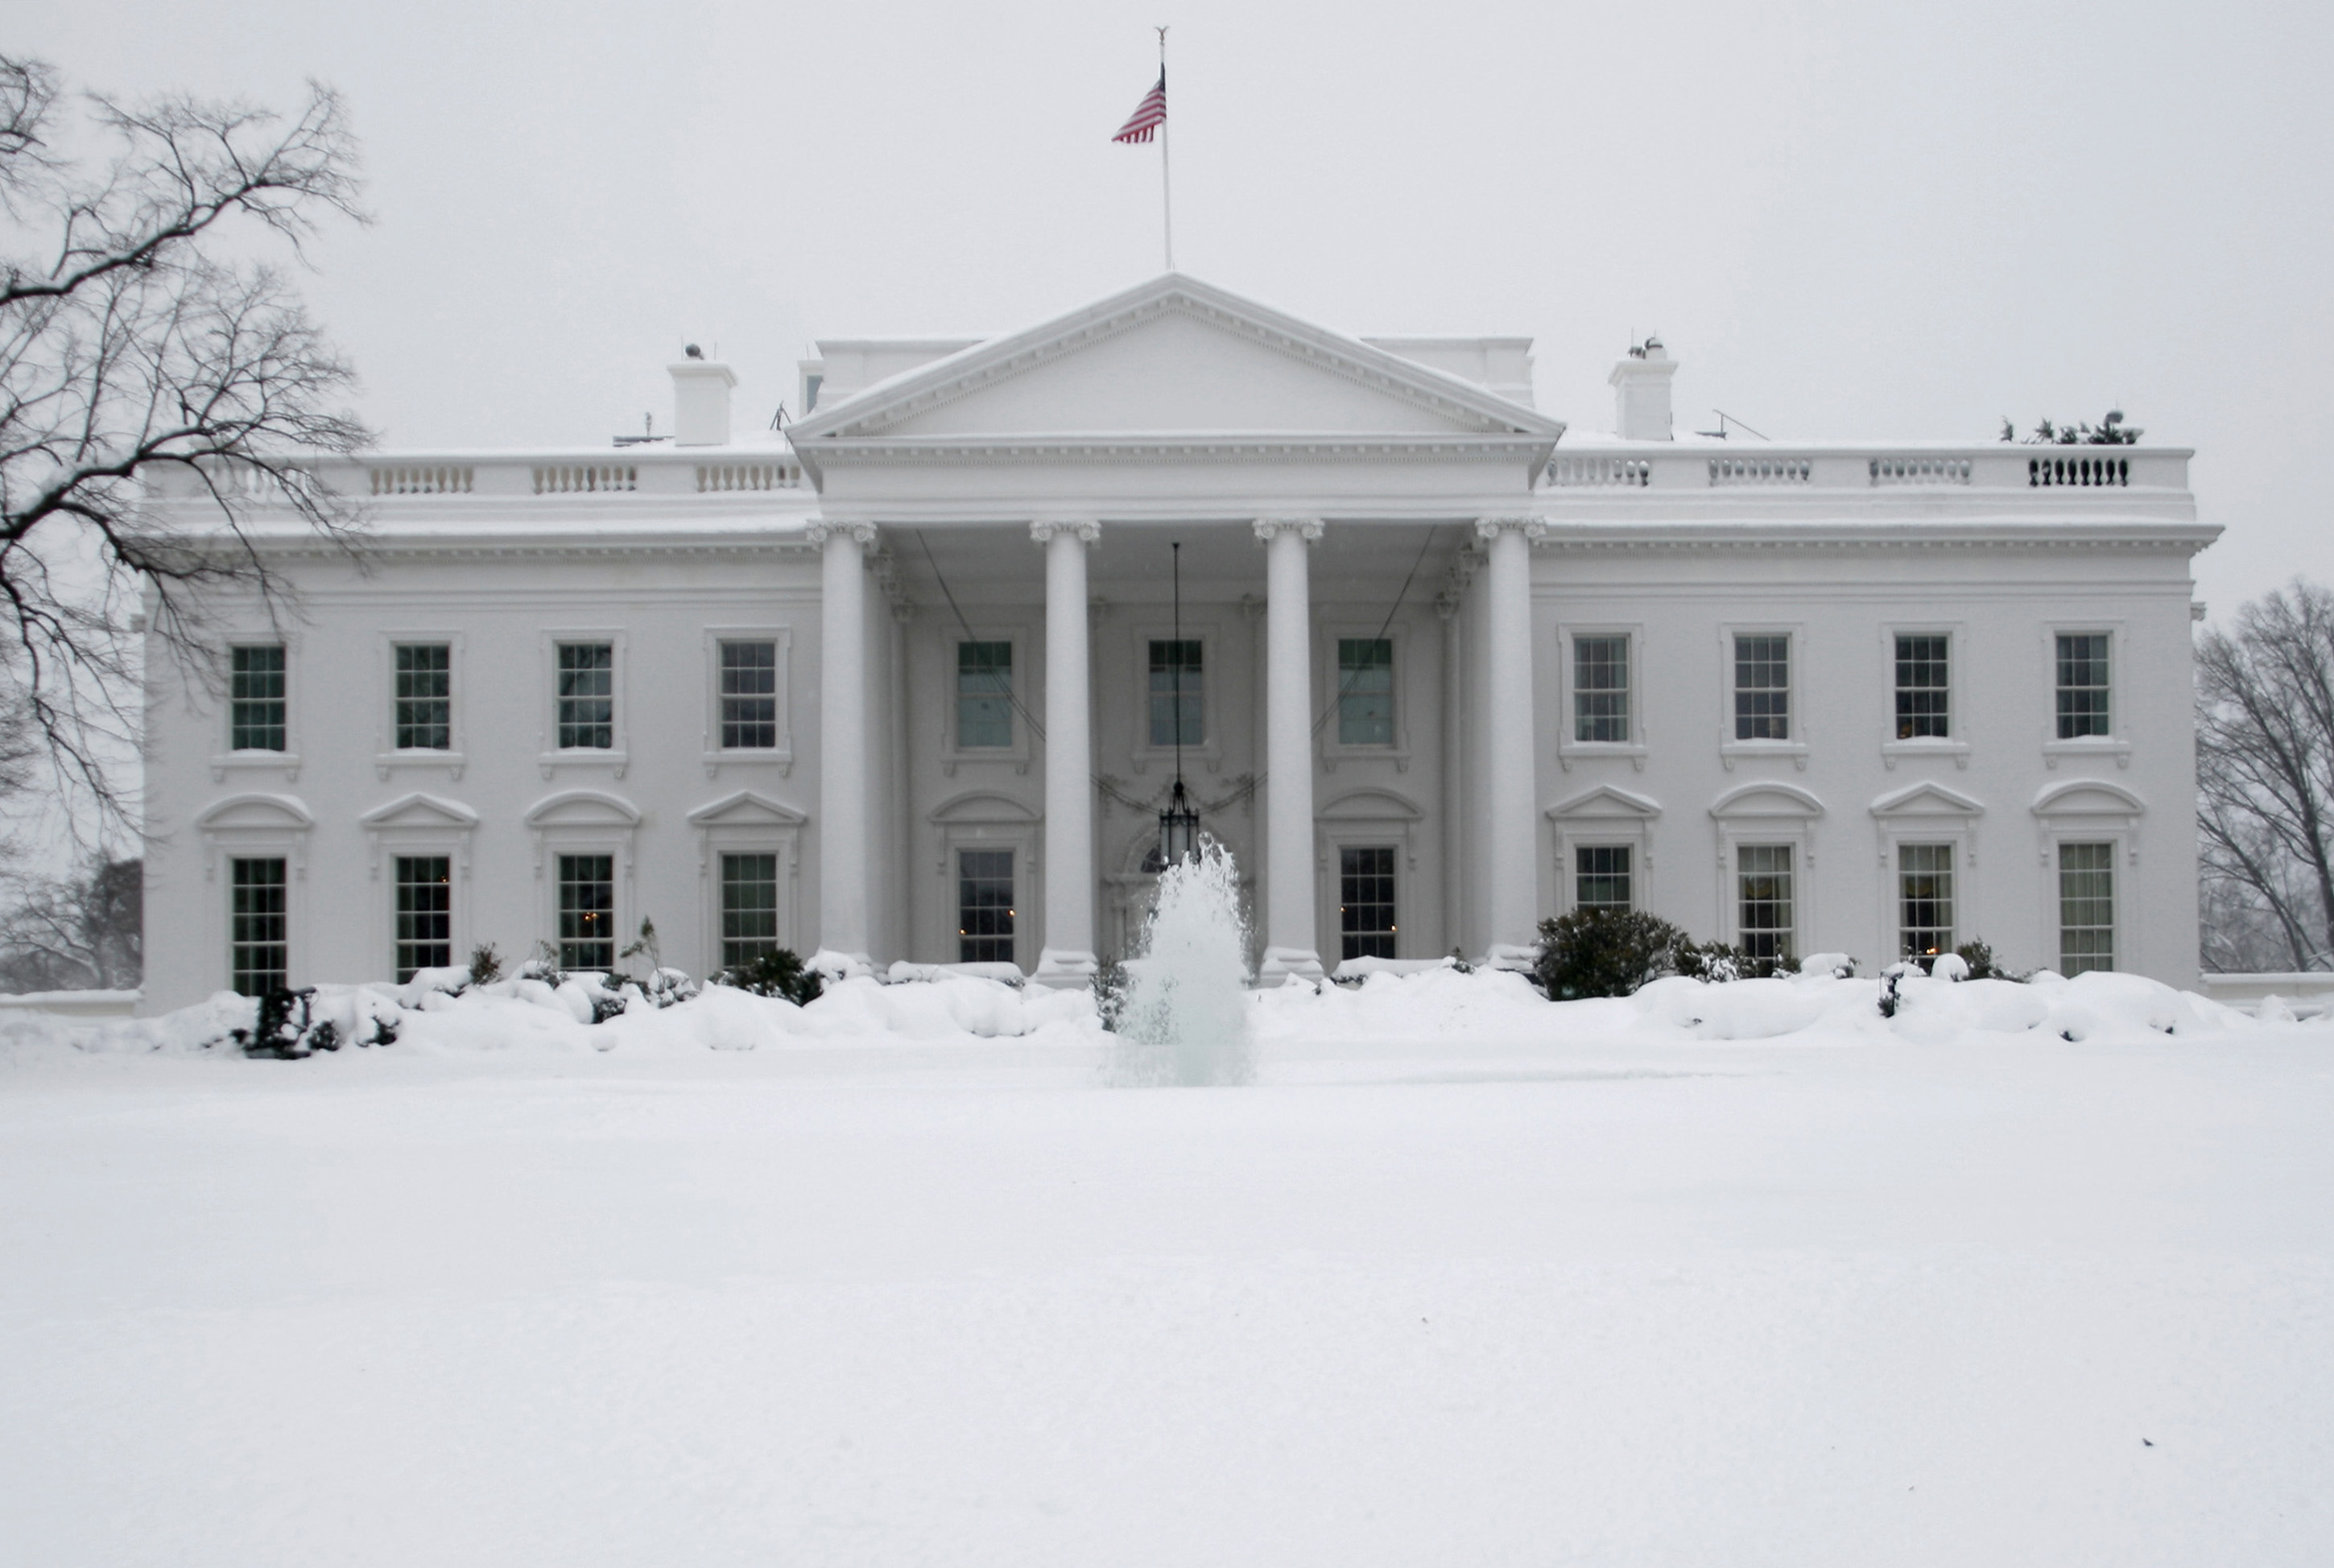 https://upload.wikimedia.org/wikipedia/commons/a/a0/White_House_-_Blizzard_of_2010.jpg